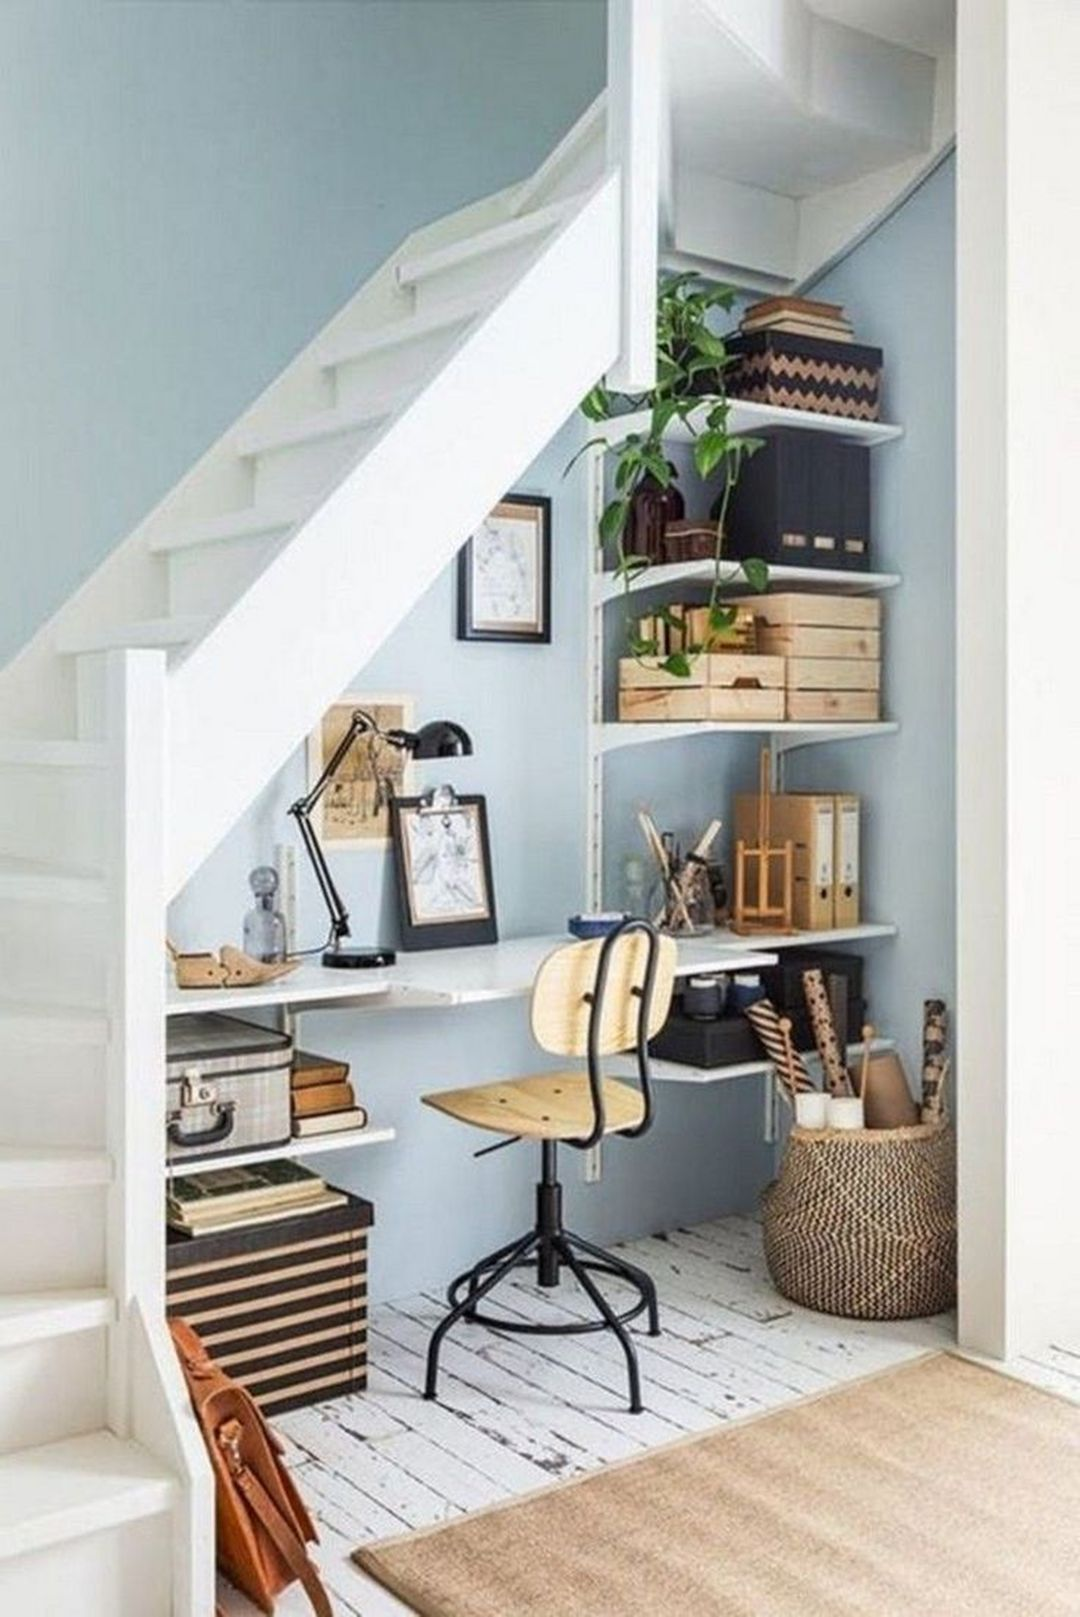 Storage Space Ideas Teracee Home Office Design Home Home Deco